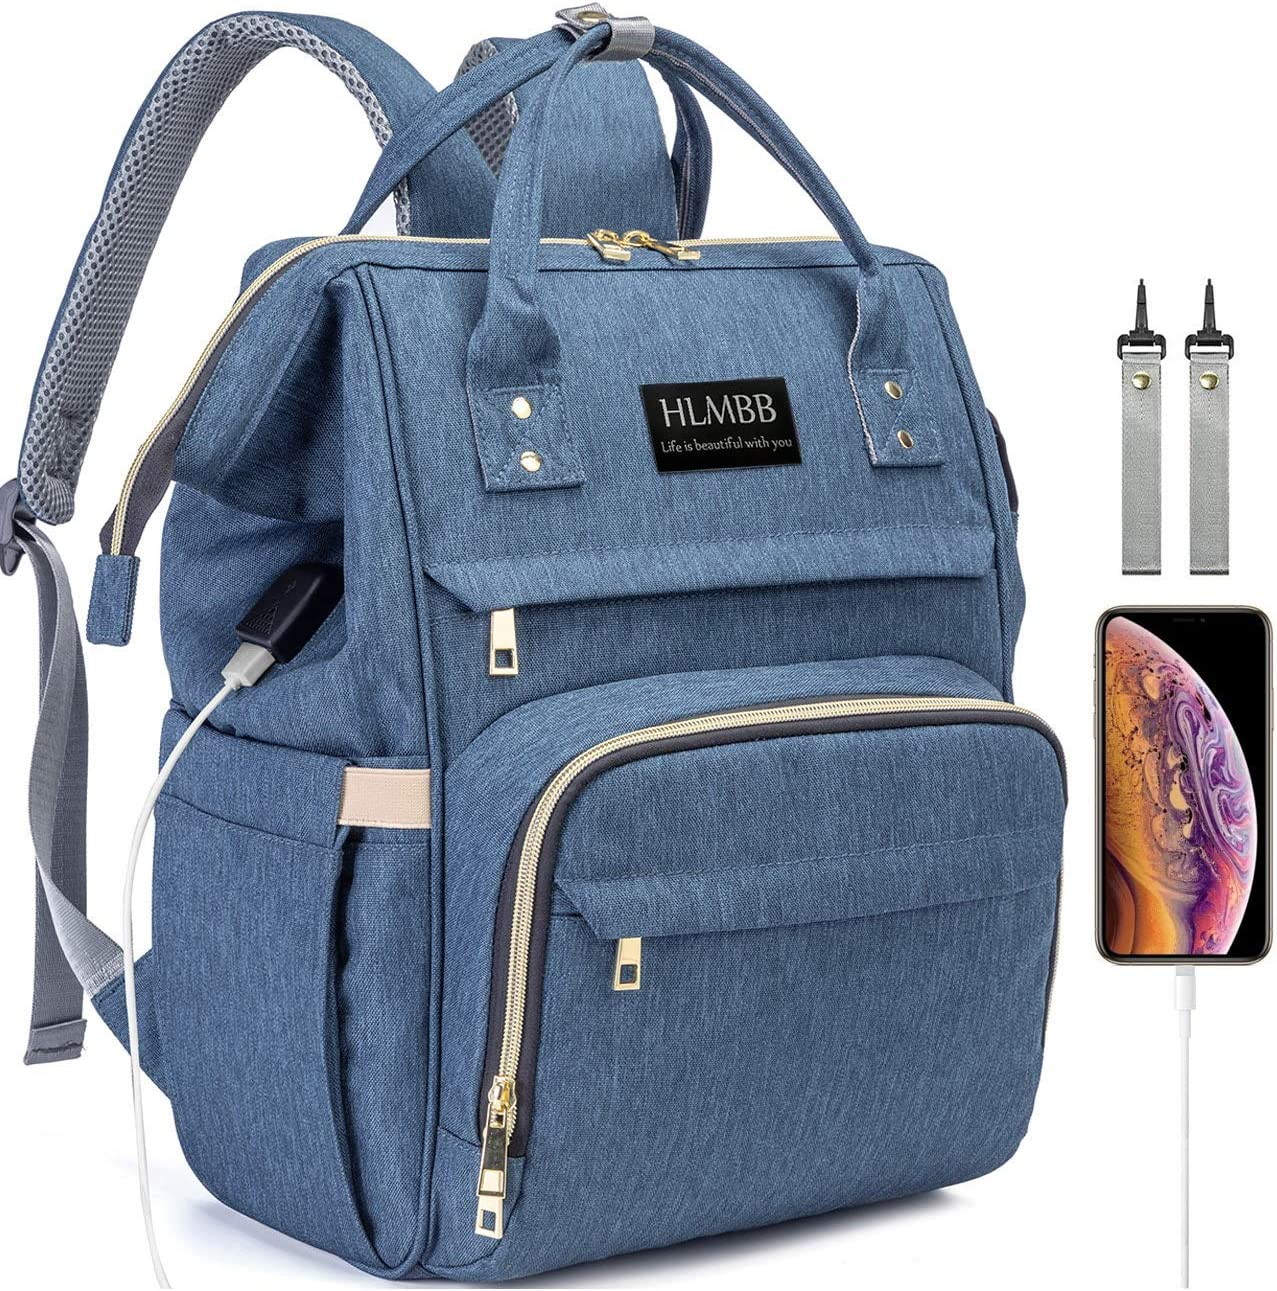 Diaper Bag Backpack for Mom Waterproof Large Space Capacity Organizer Travel Portable For Newborn Girl Boy Girls Boys Kids Babies Toddlers Phone Usb Charging Port Toy Accessory Stuff Insulated Pocket Diaper (1.blue)